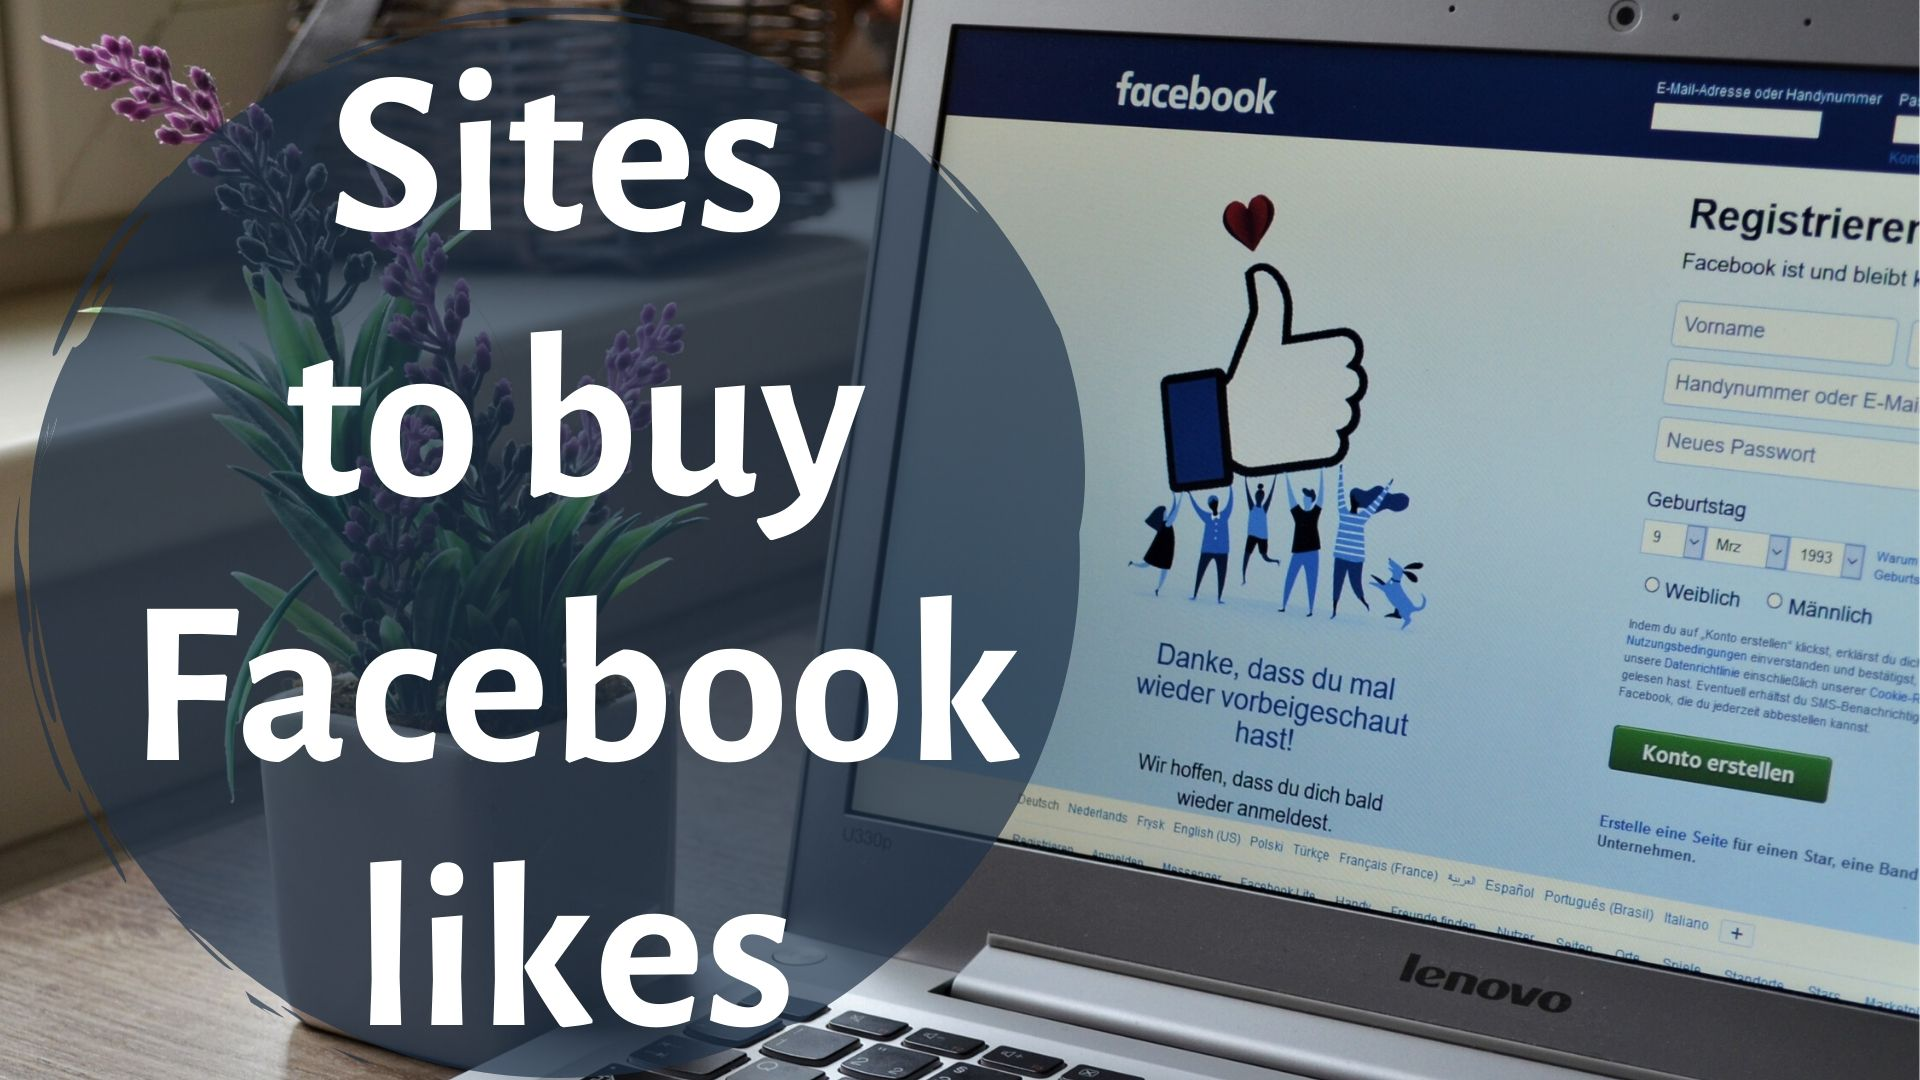 Sites to buy Facebook likes